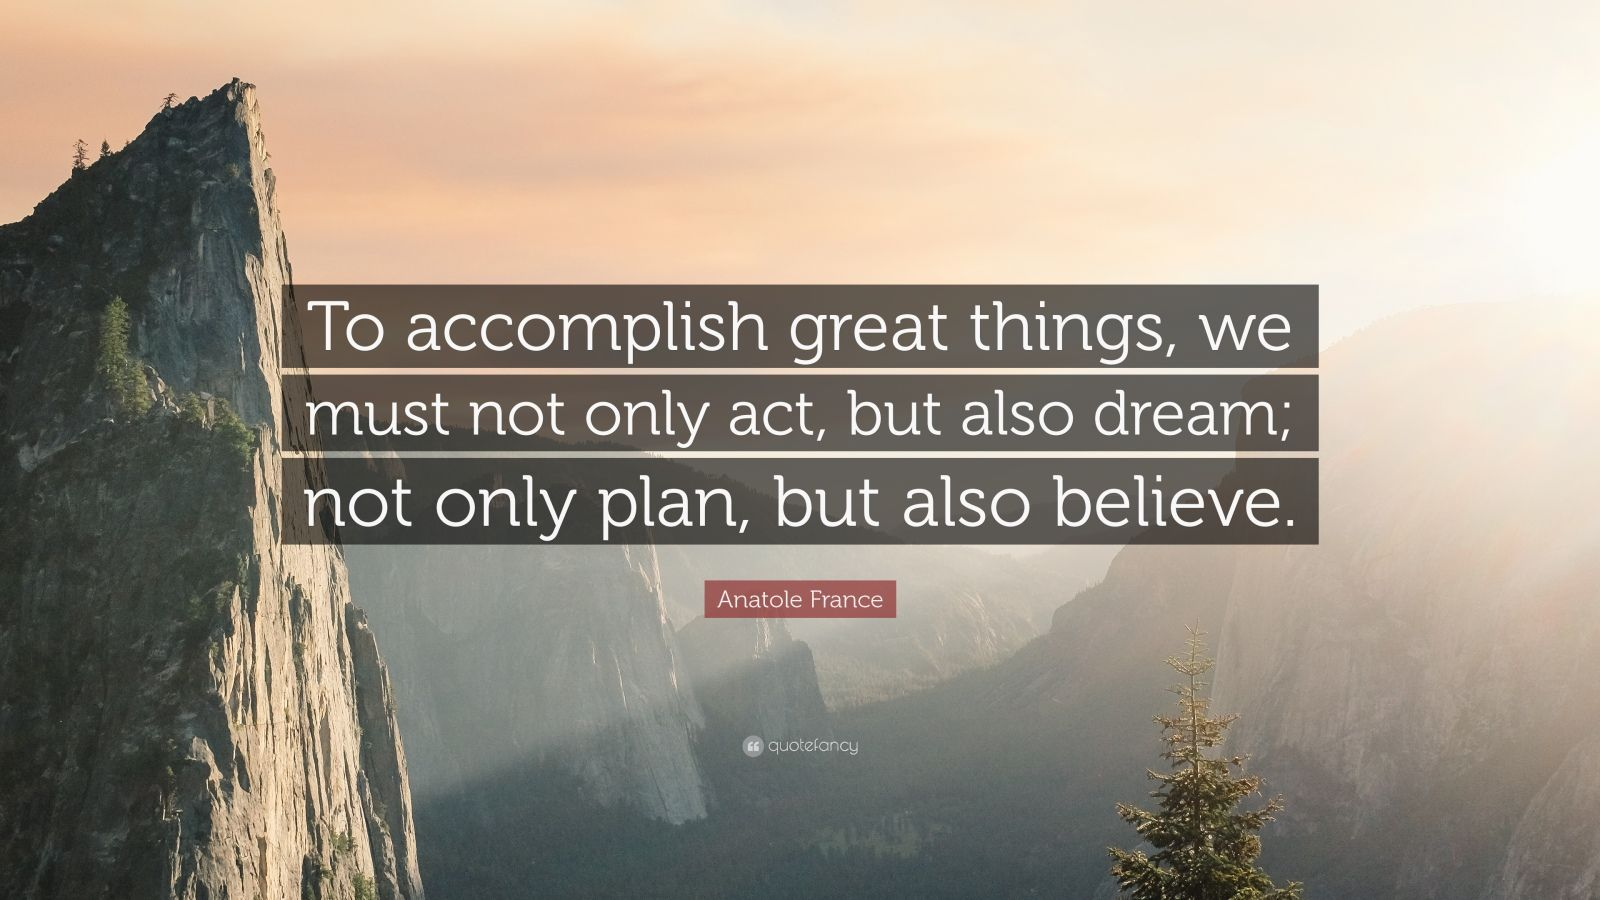 """Anatole France Quote: """"To accomplish great things, we must not only act, but also dream; not only plan, but also believe."""""""